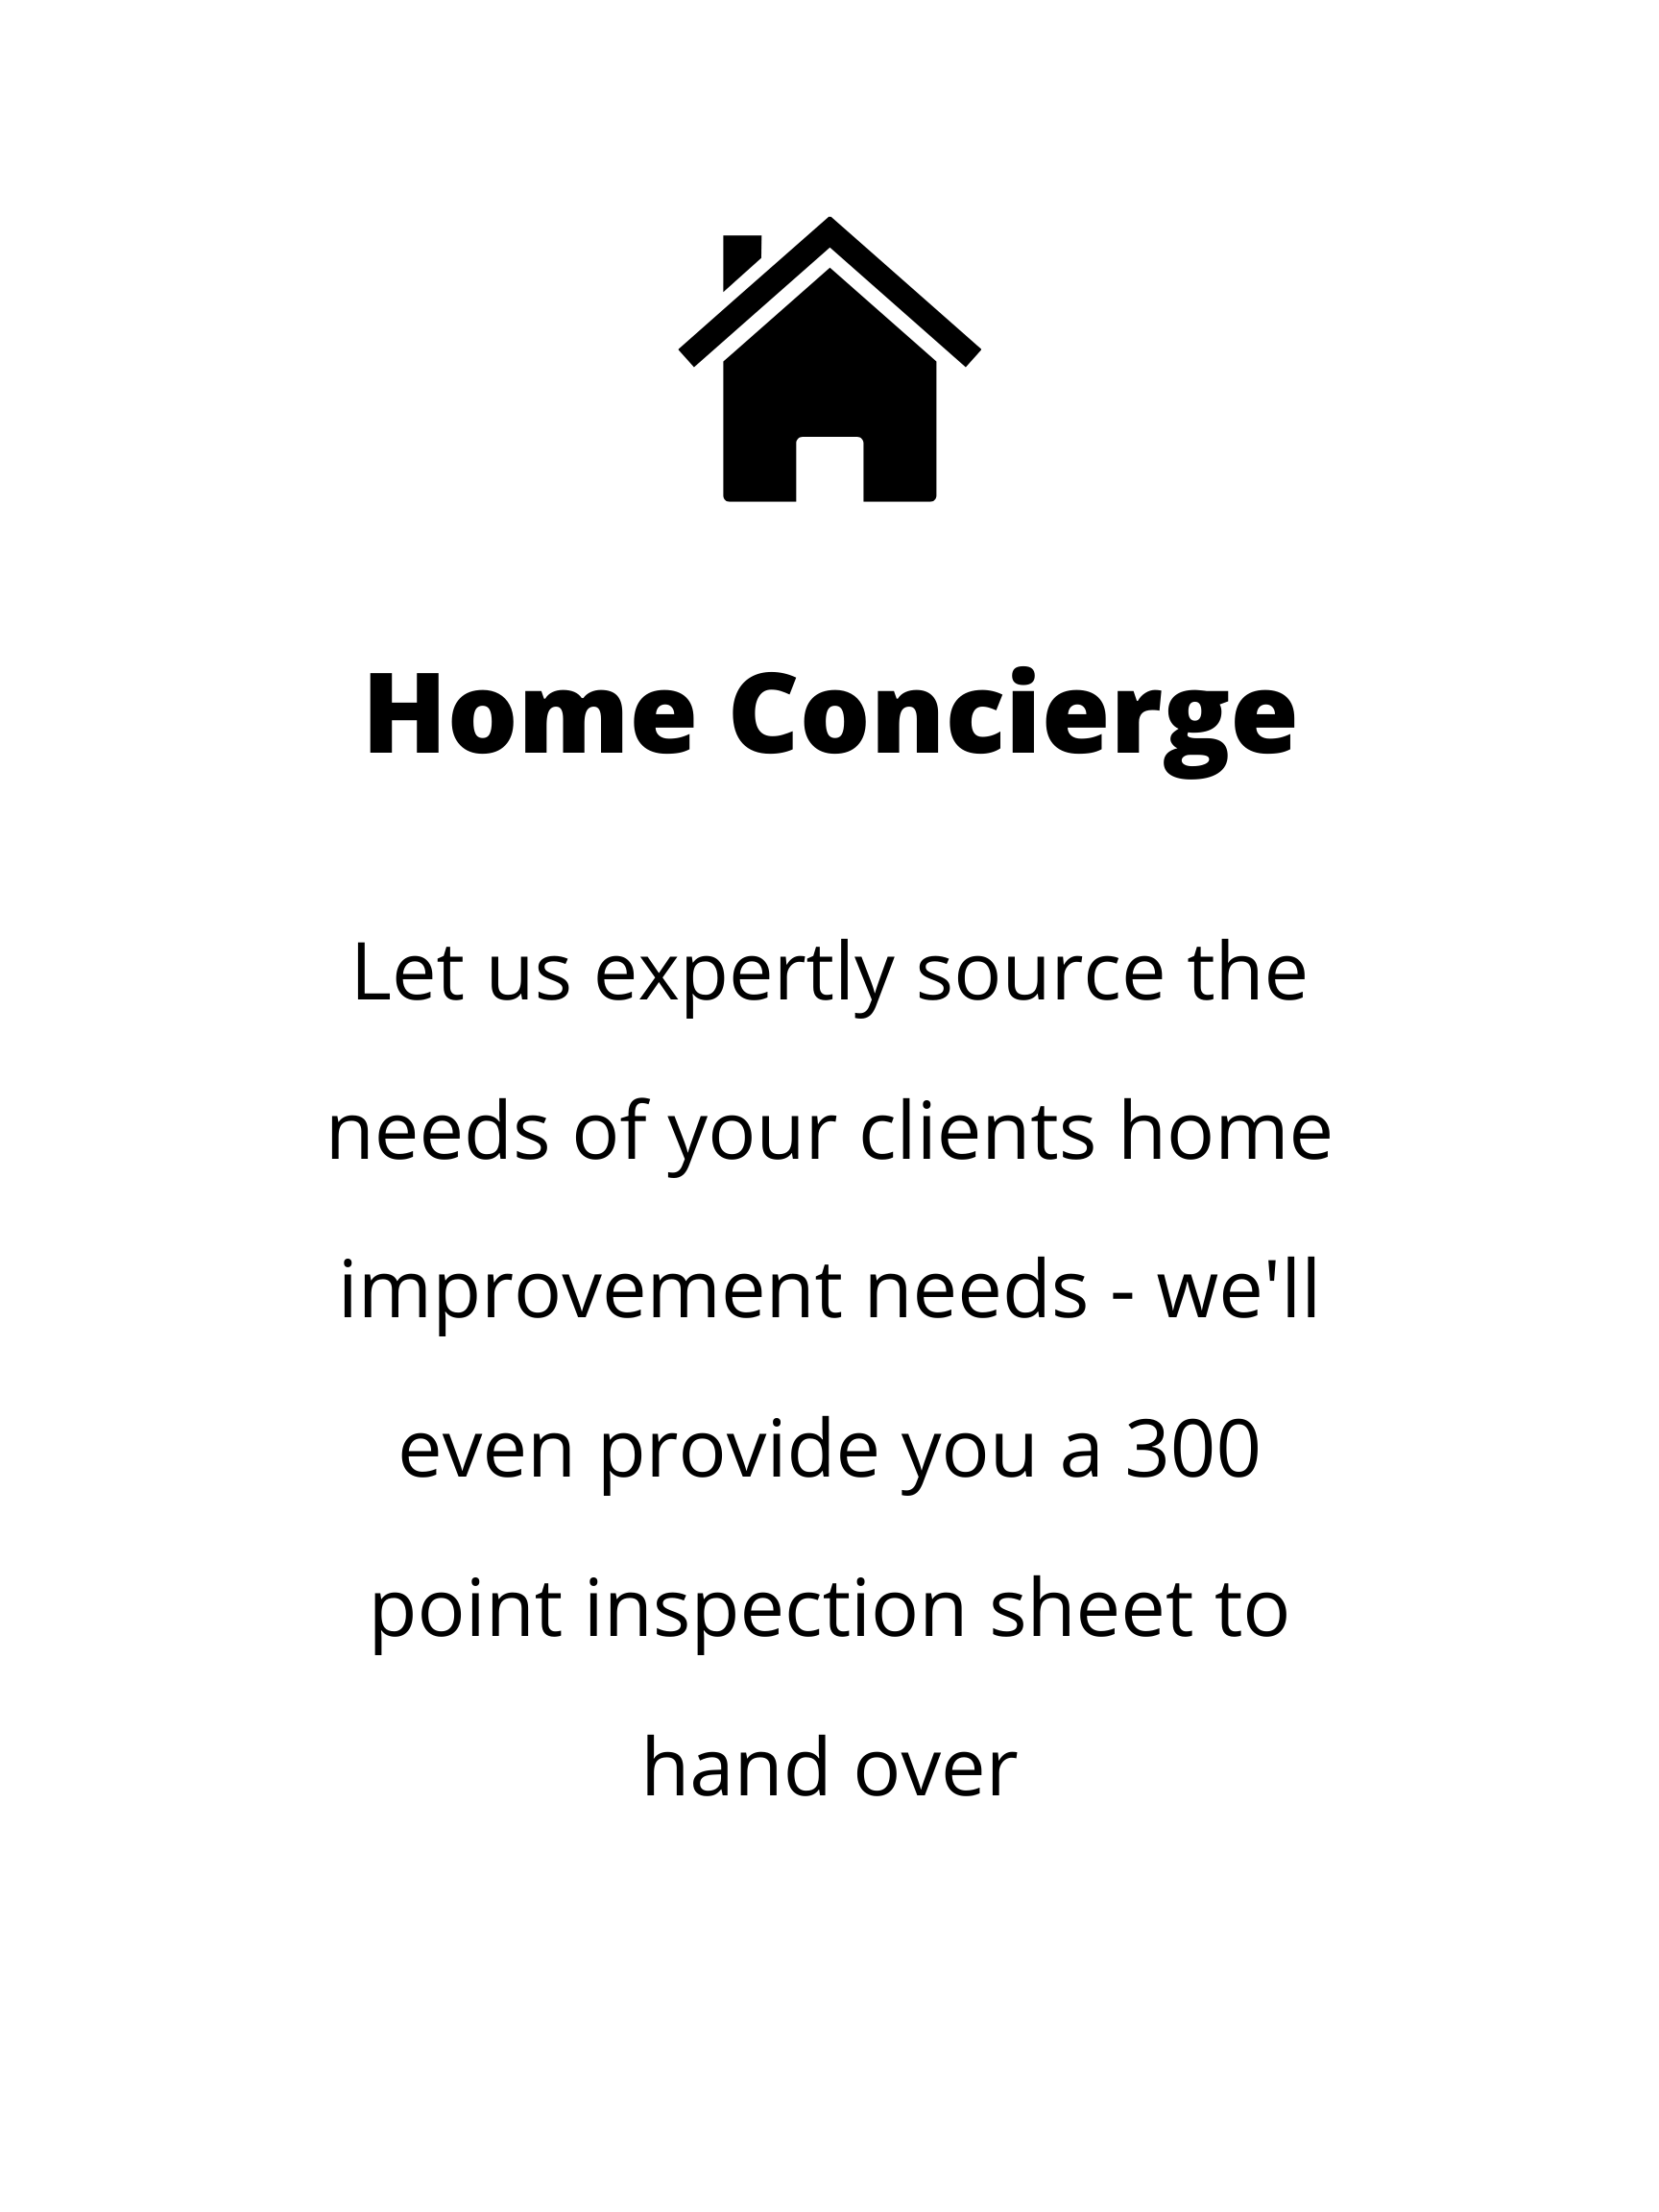 Let us expertly source the needs of your clients home improvement needs - well even provide you a 300 point inspection sheet to hand over-2